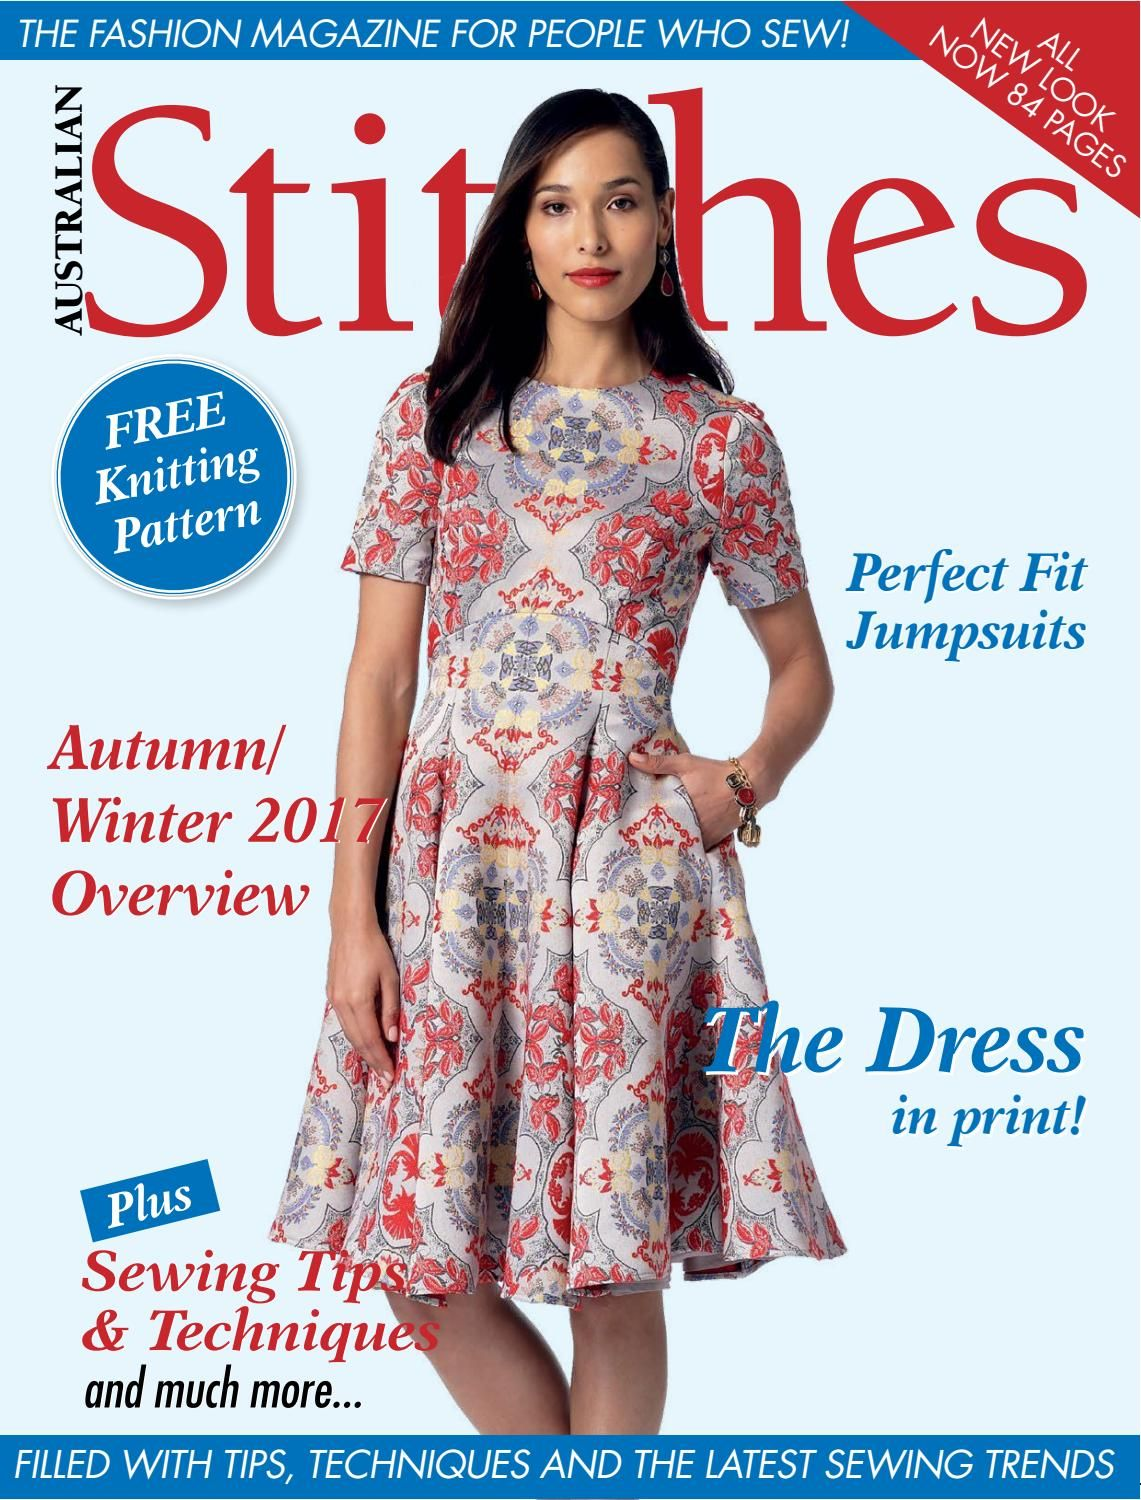 Australian stitches volume 25 issue 4 2017 sewing magazines australian stitches volume 25 issue 4 2017 jeuxipadfo Image collections